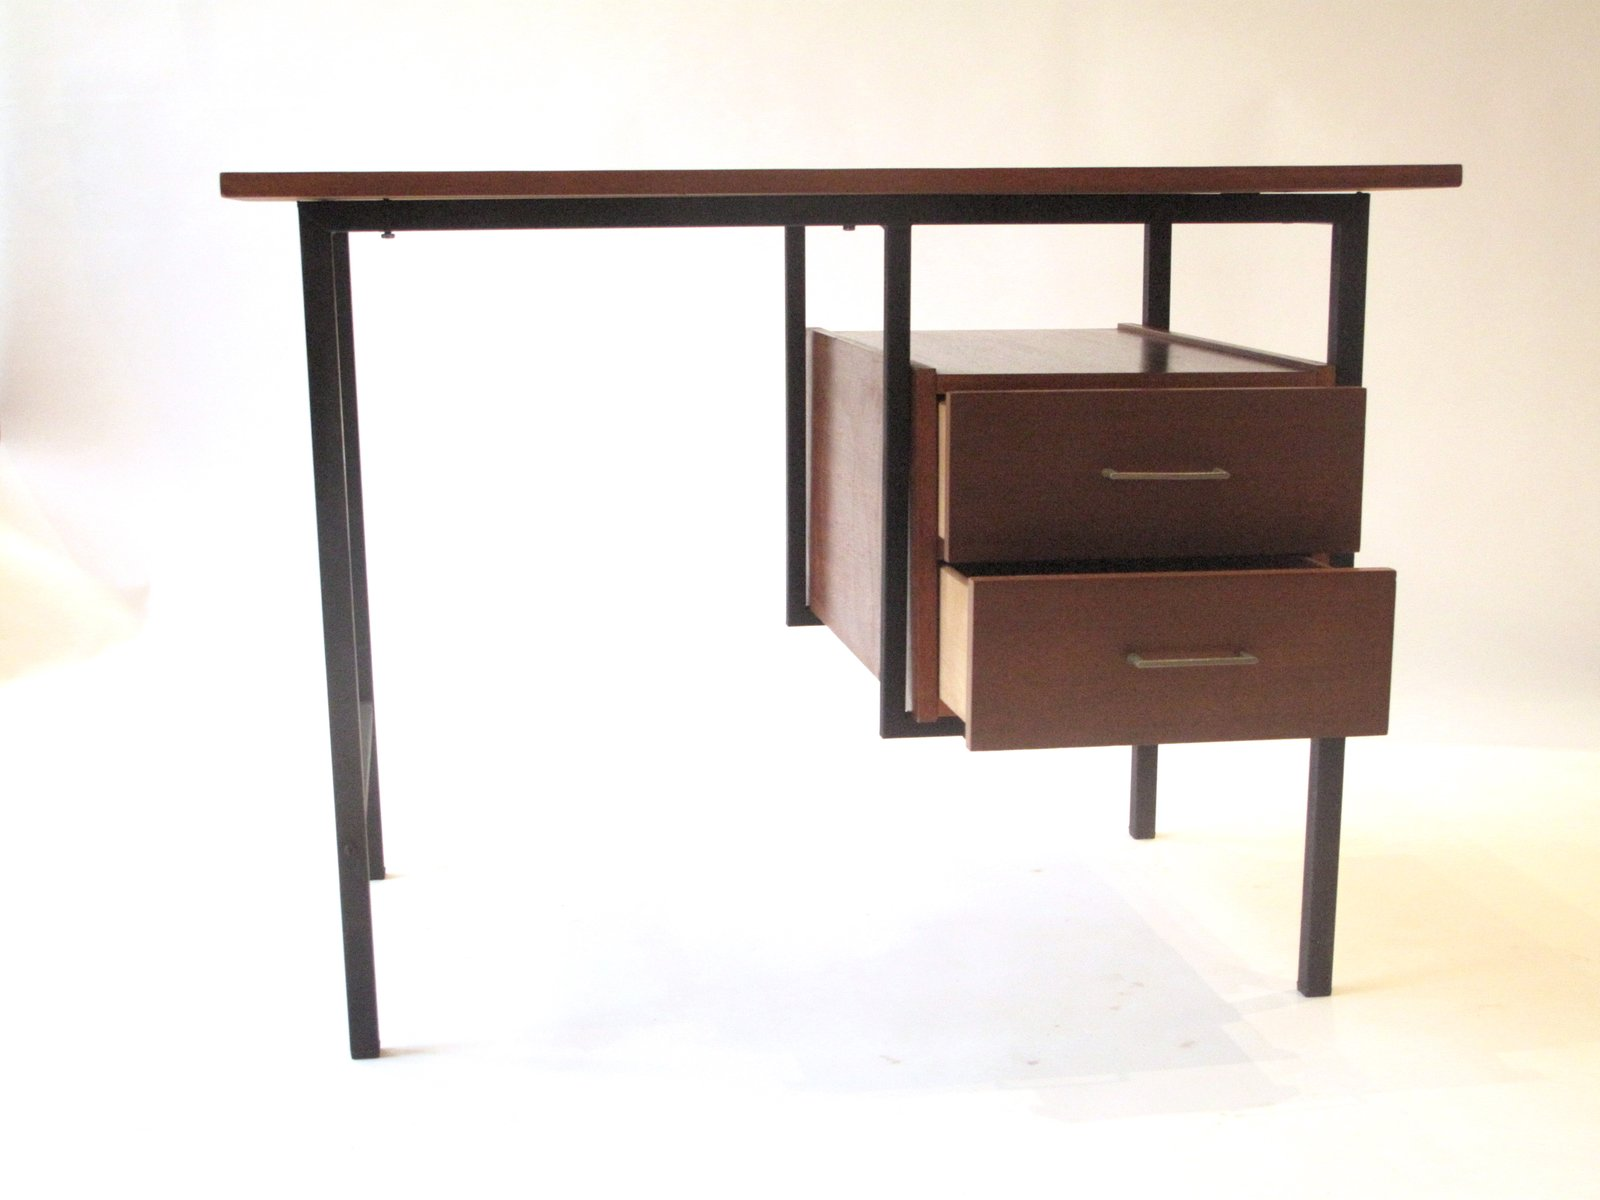 bureau en bois et m tal 1960s en vente sur pamono. Black Bedroom Furniture Sets. Home Design Ideas